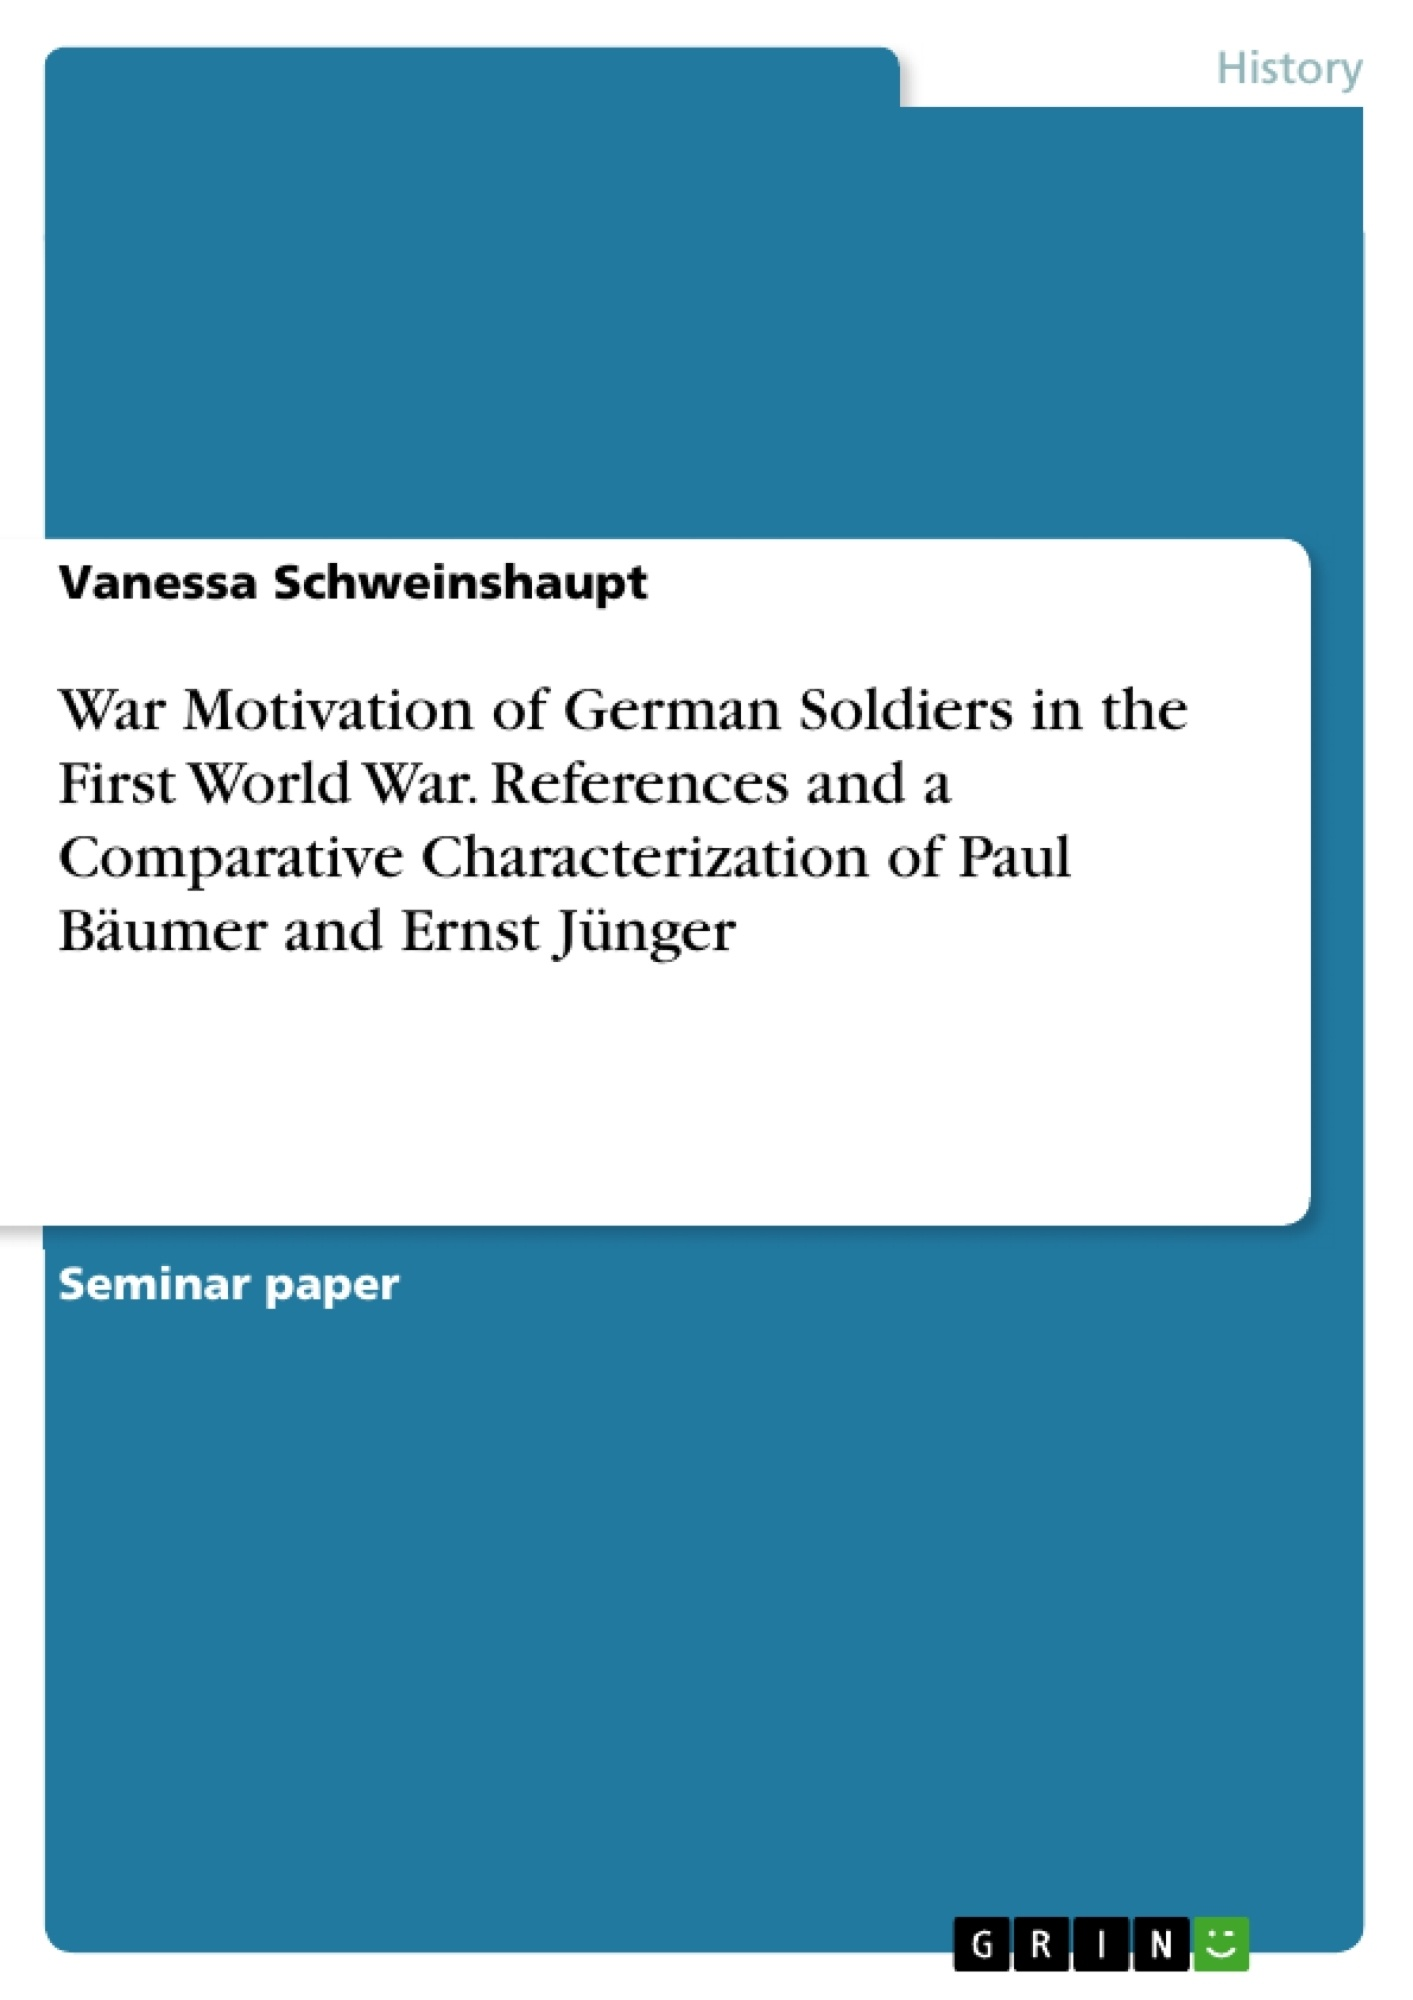 Title: War Motivation of German Soldiers in the First World War. References and a Comparative Characterization of Paul Bäumer and Ernst Jünger